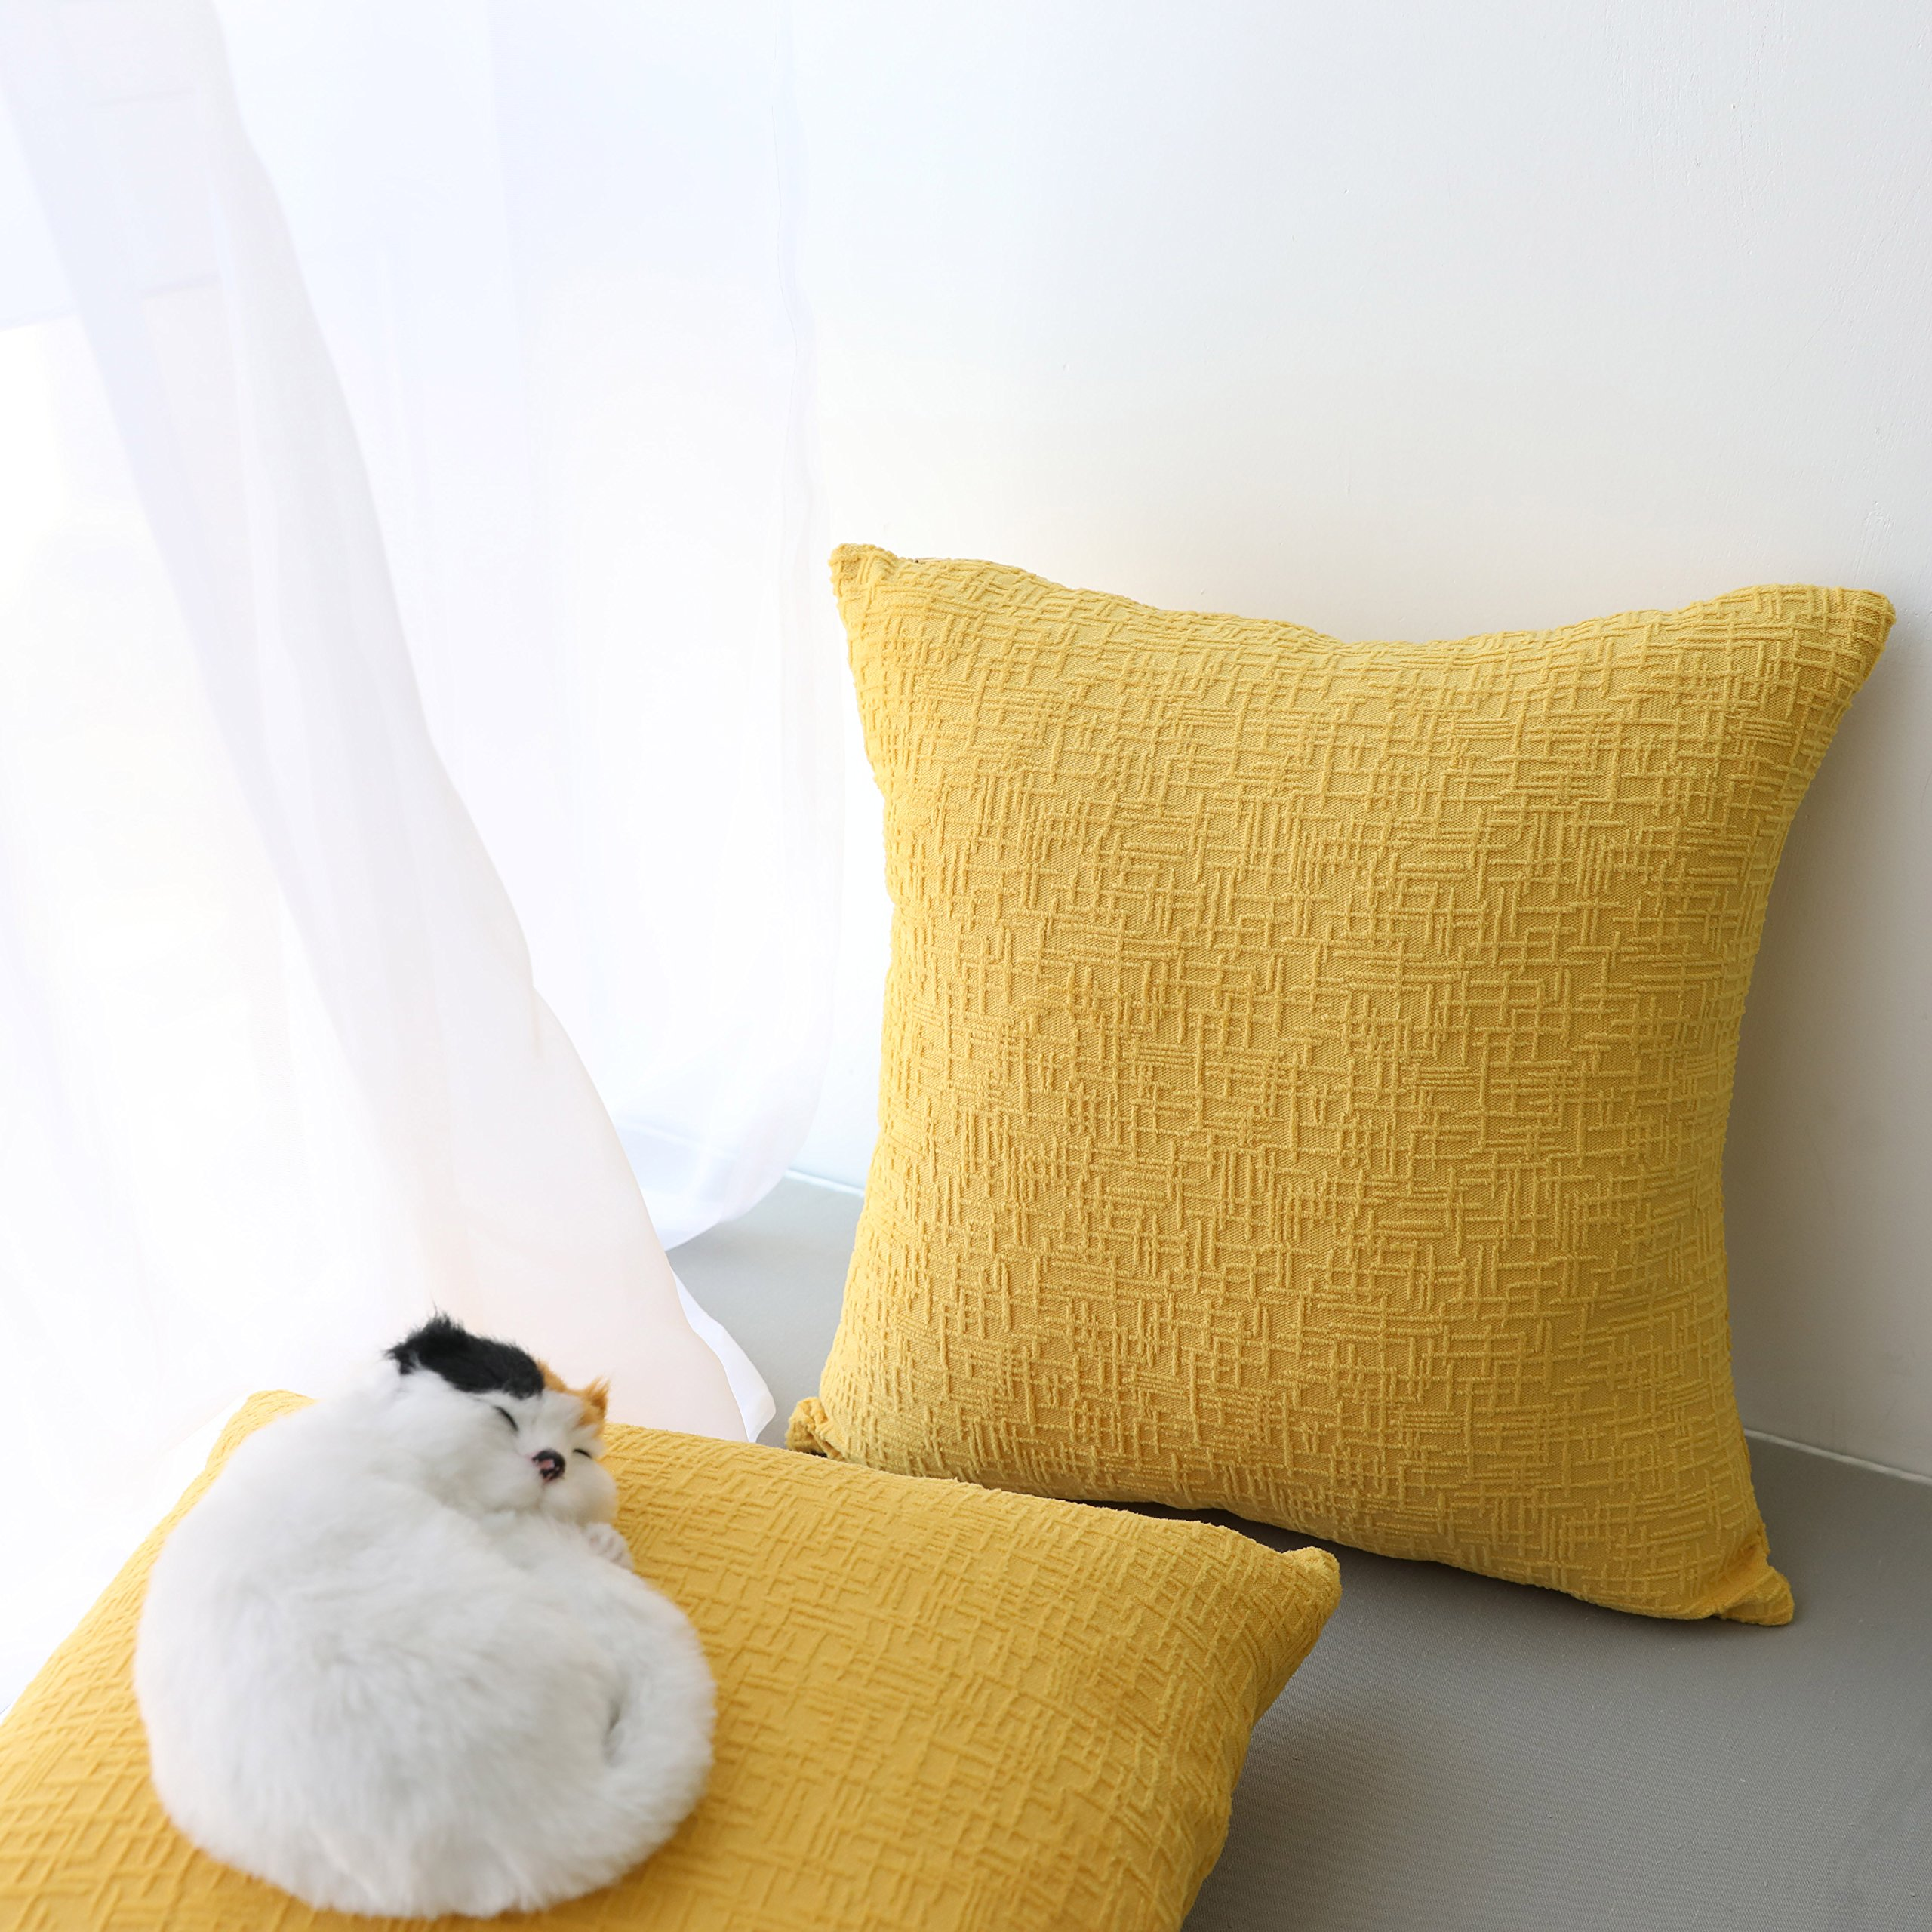 Kevin Textile Decor Soft Solid Velvet Toss Throw Pillow Cover Spring Fashion Striped Decorative Pillow Case Handmade Cushion Cover for Couch, 18x18 inches,2 Pieces,Primrose Yellow by Kevin Textile